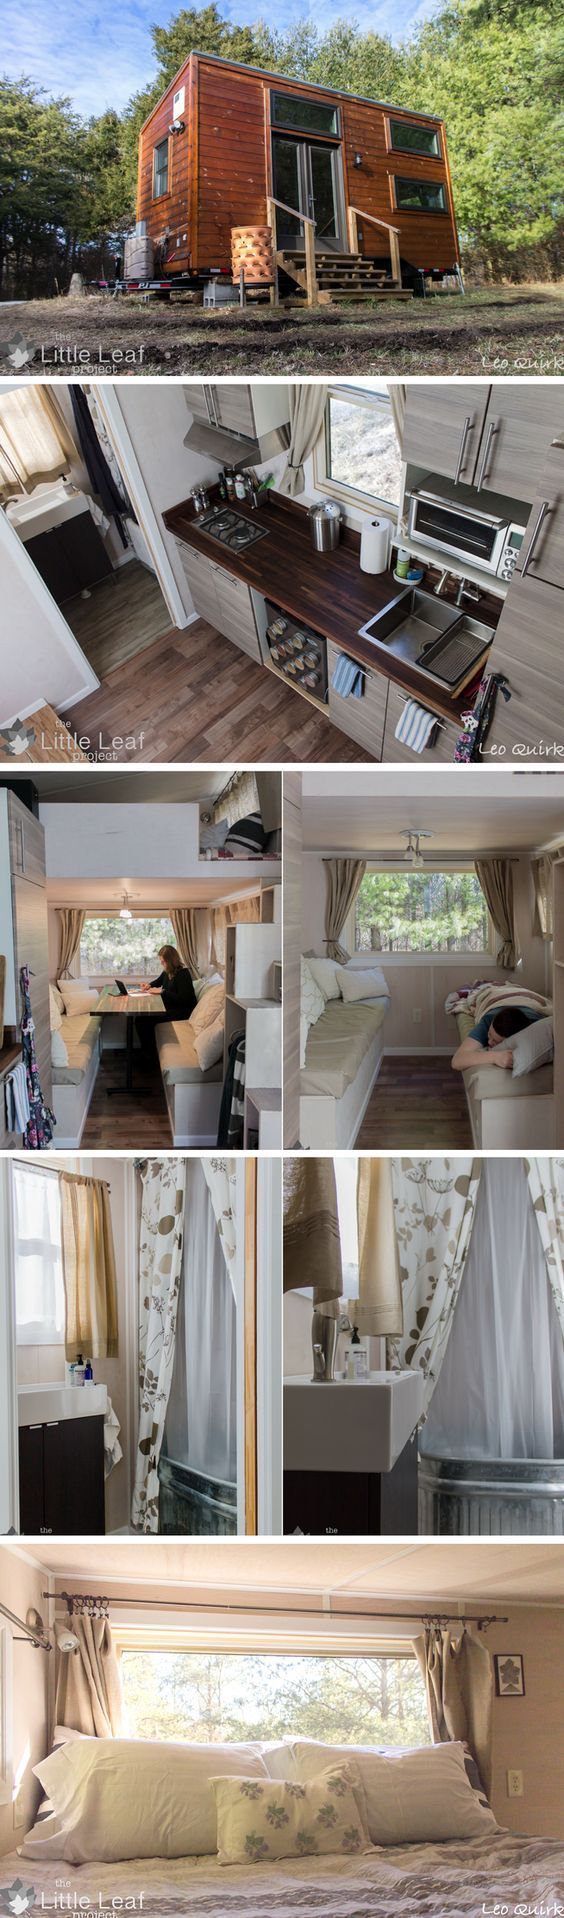 The Little Leaf Project tiny house. A 220 sq ft home, currently available for…